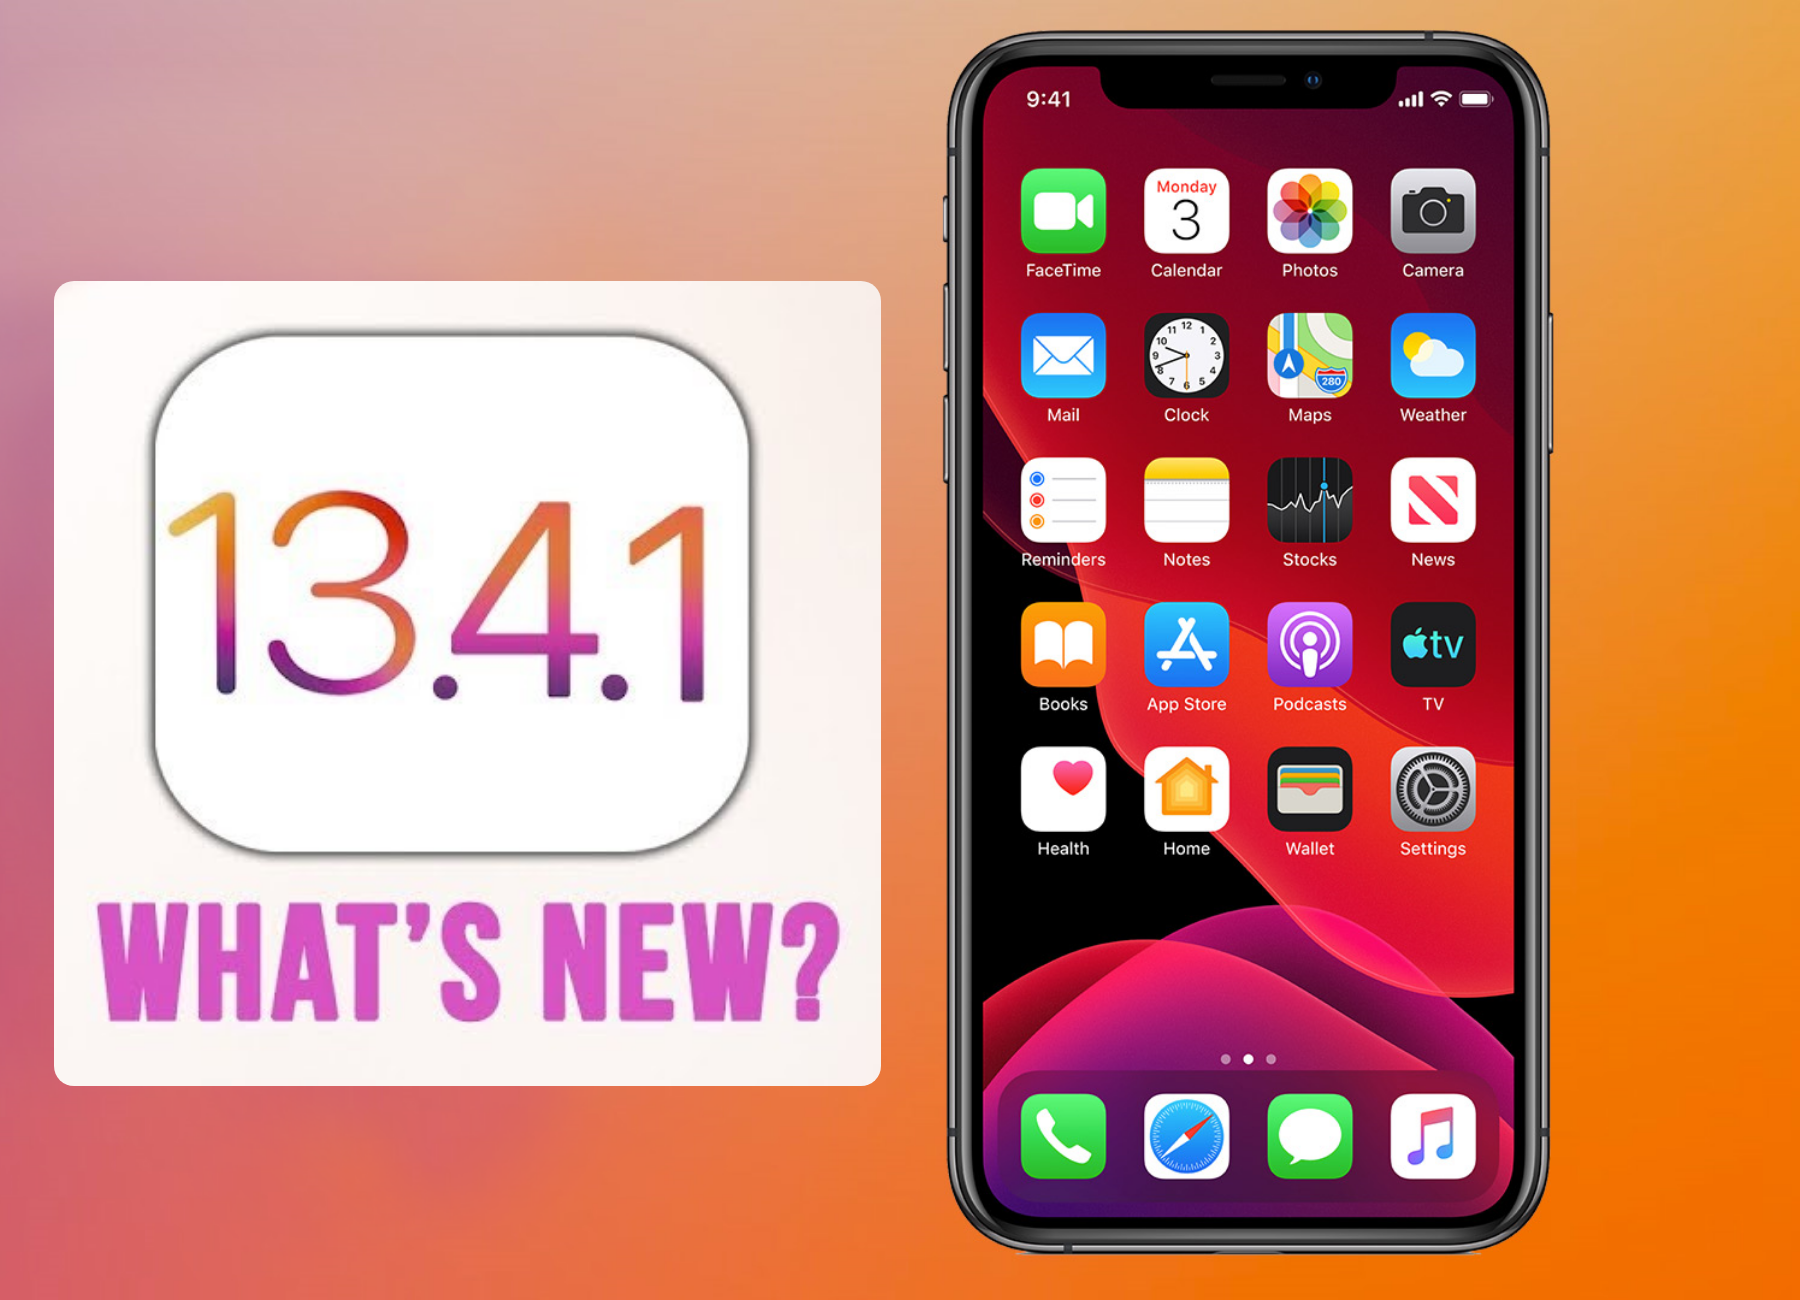 iOS 13.4.1: What are the new features for iPhone and iPad?